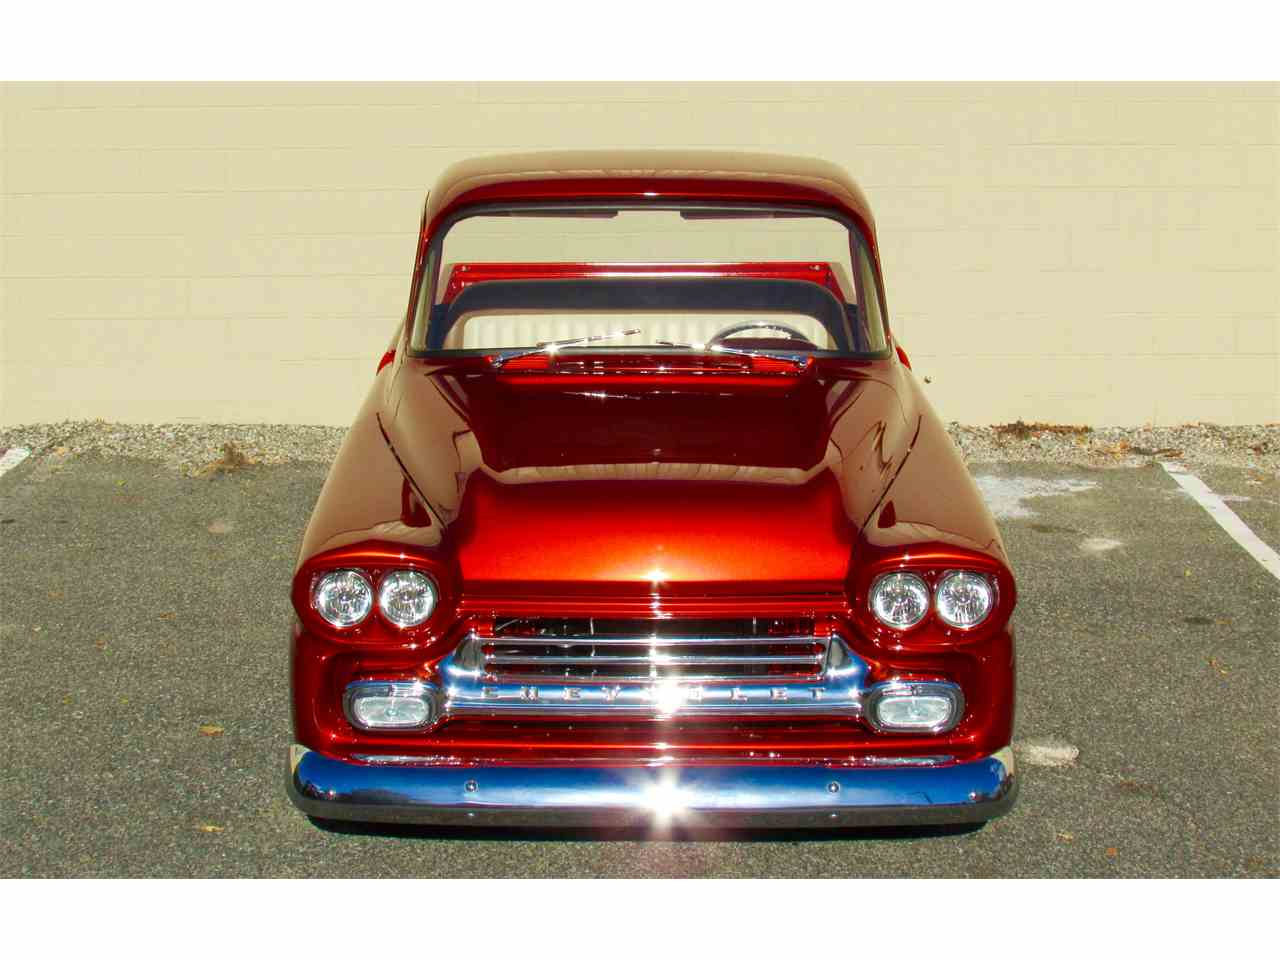 Large Picture of 1959 Chevrolet Fleetside Custom Pickup Truck  Offered by a Private Seller - JPTV